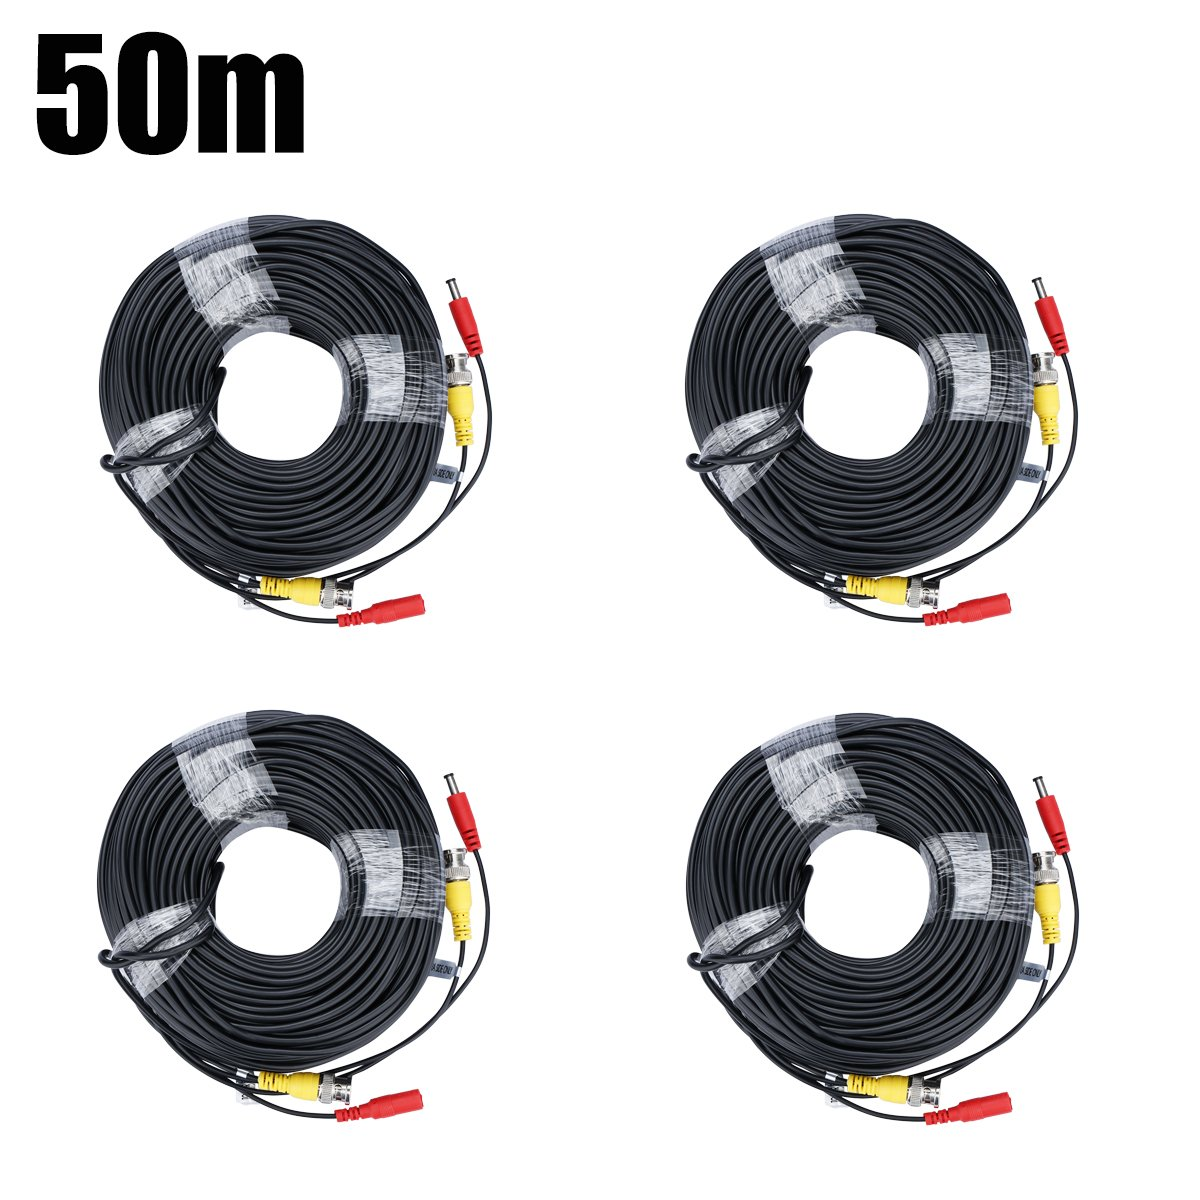 BNC Video Power Cable FLOUREON CCTV Security Camera Wire Cord for DVR House Security Camera System 100/150 Feet Long (4 Pack 150FT Cable)